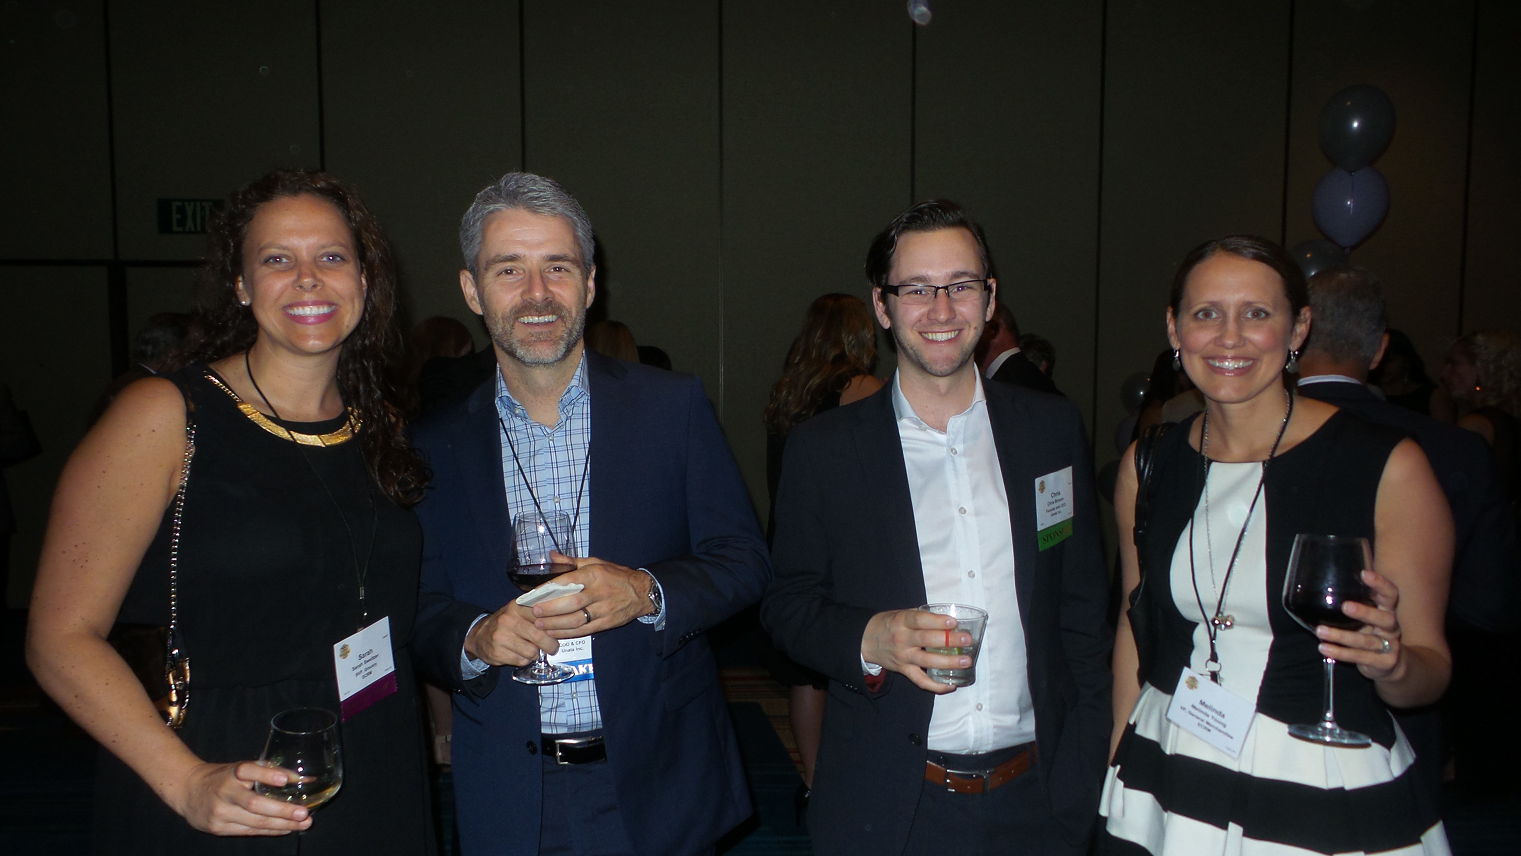 From left: Sarah Sweitzer, Marc Faucher, CFO of event sponsor Unata, Chris Bryson, CEO of Unata, and Melinda Young